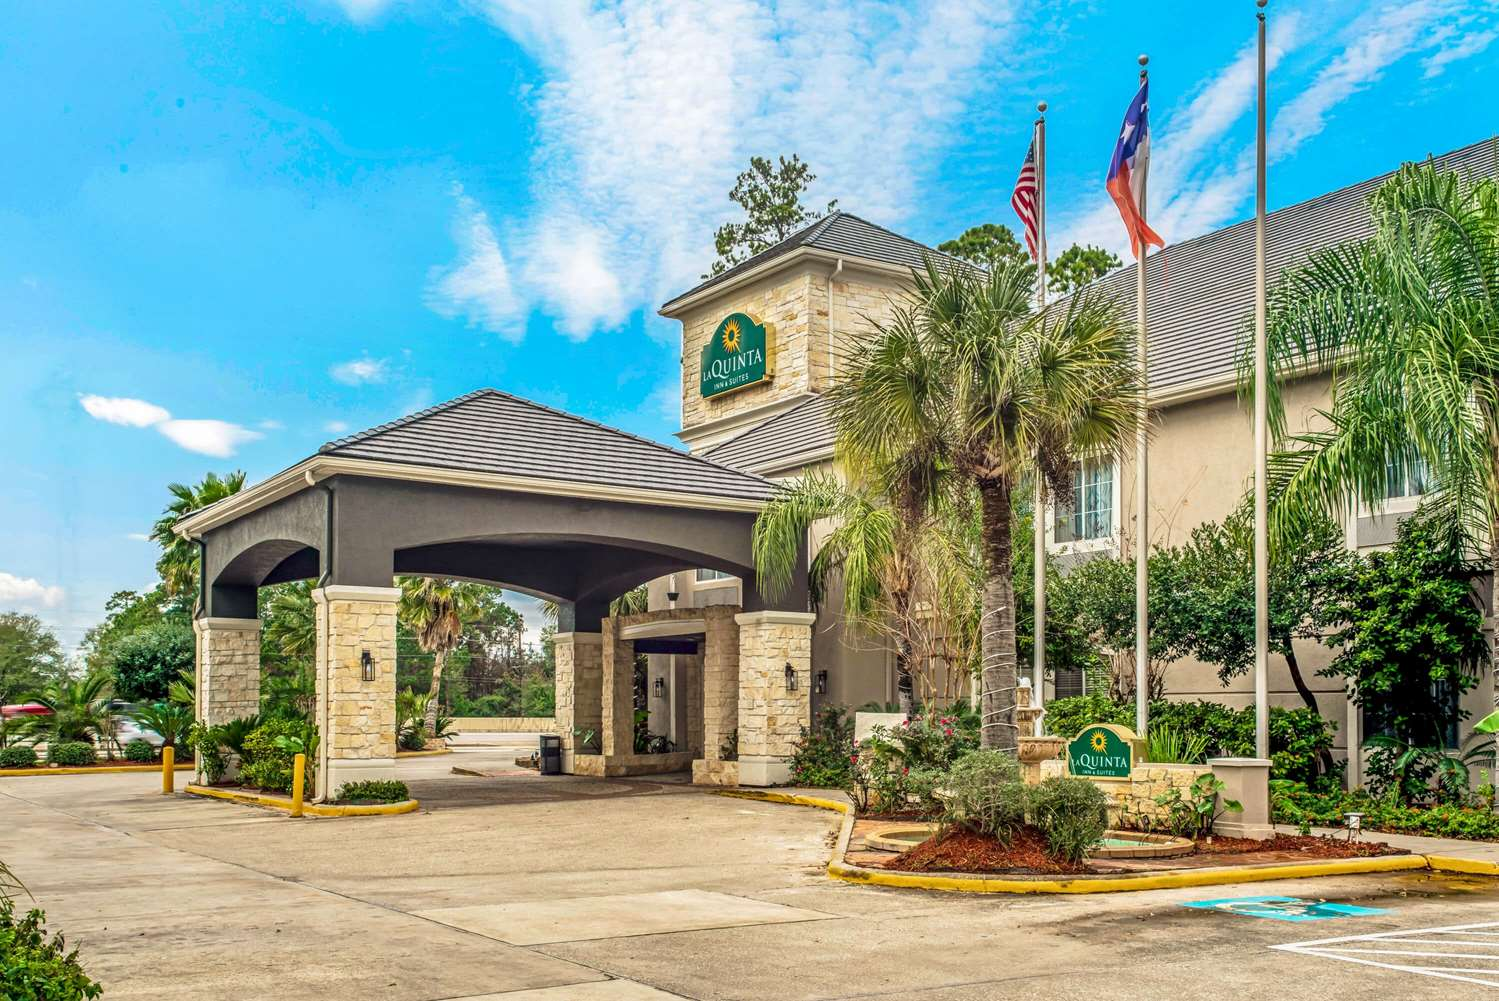 La Quinta Inn & Suites Kingwood